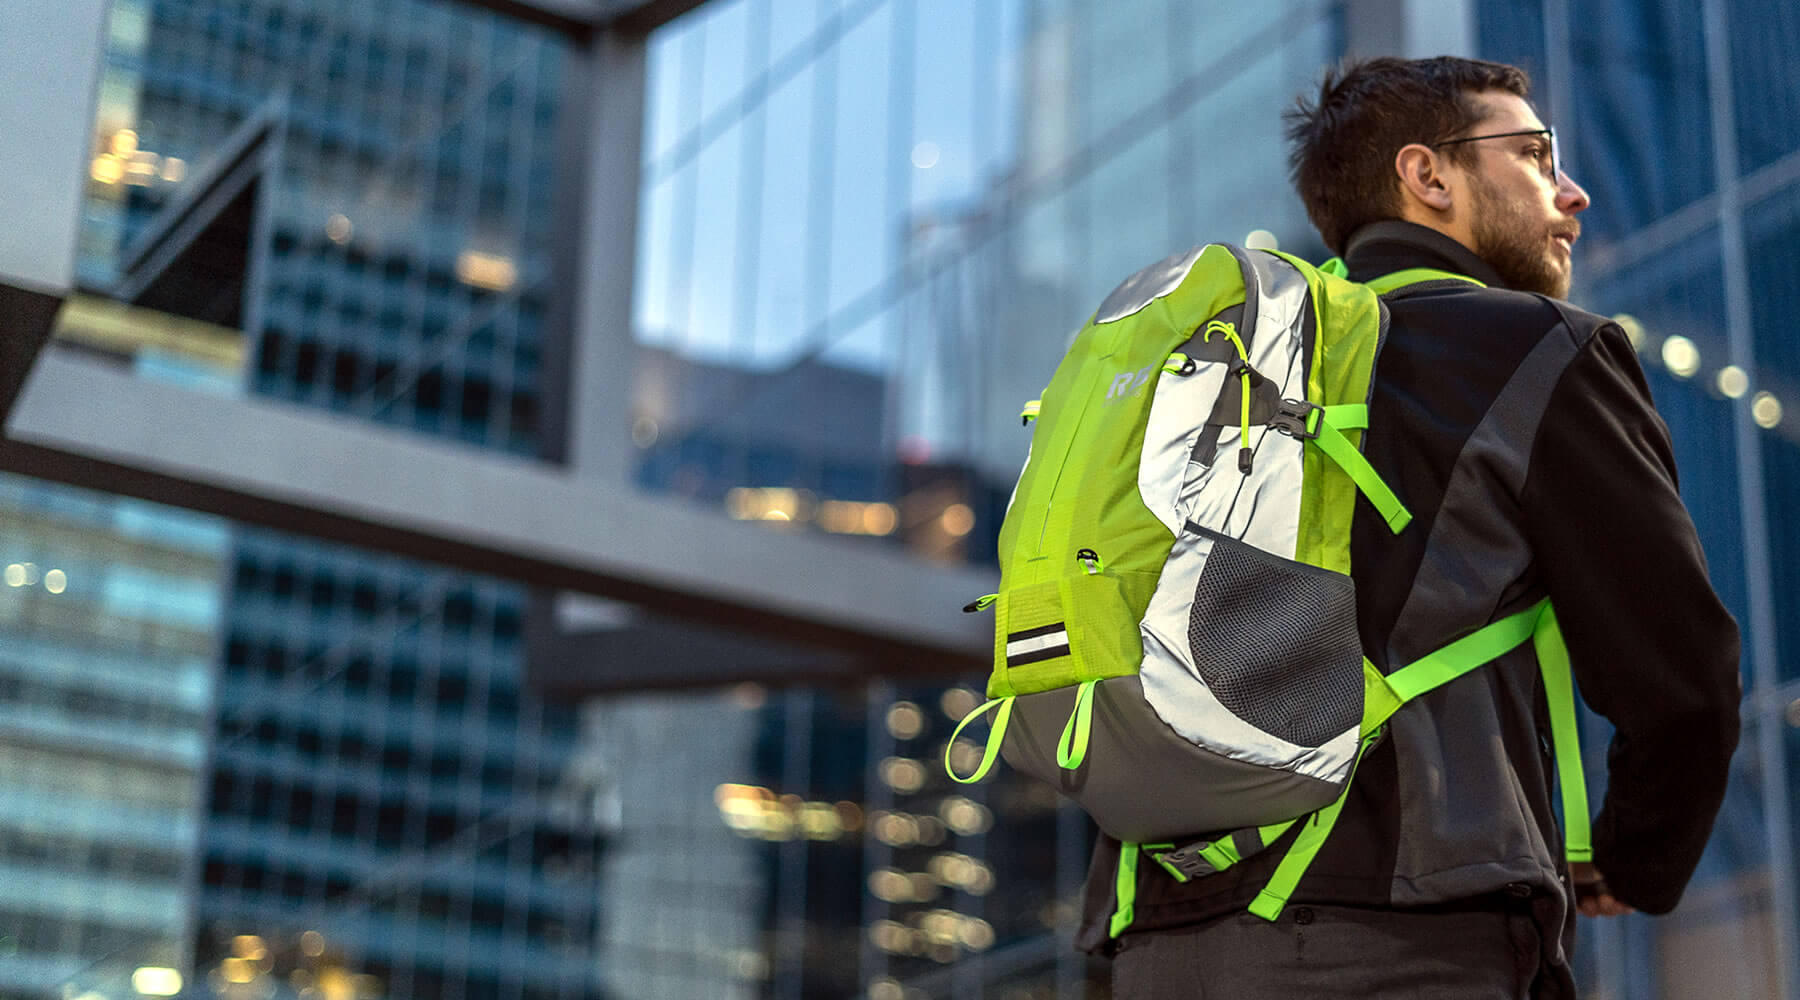 Riderbag™ Introduces Next-Generation Hi-Visibility Reflective Backpack For Bike Safety